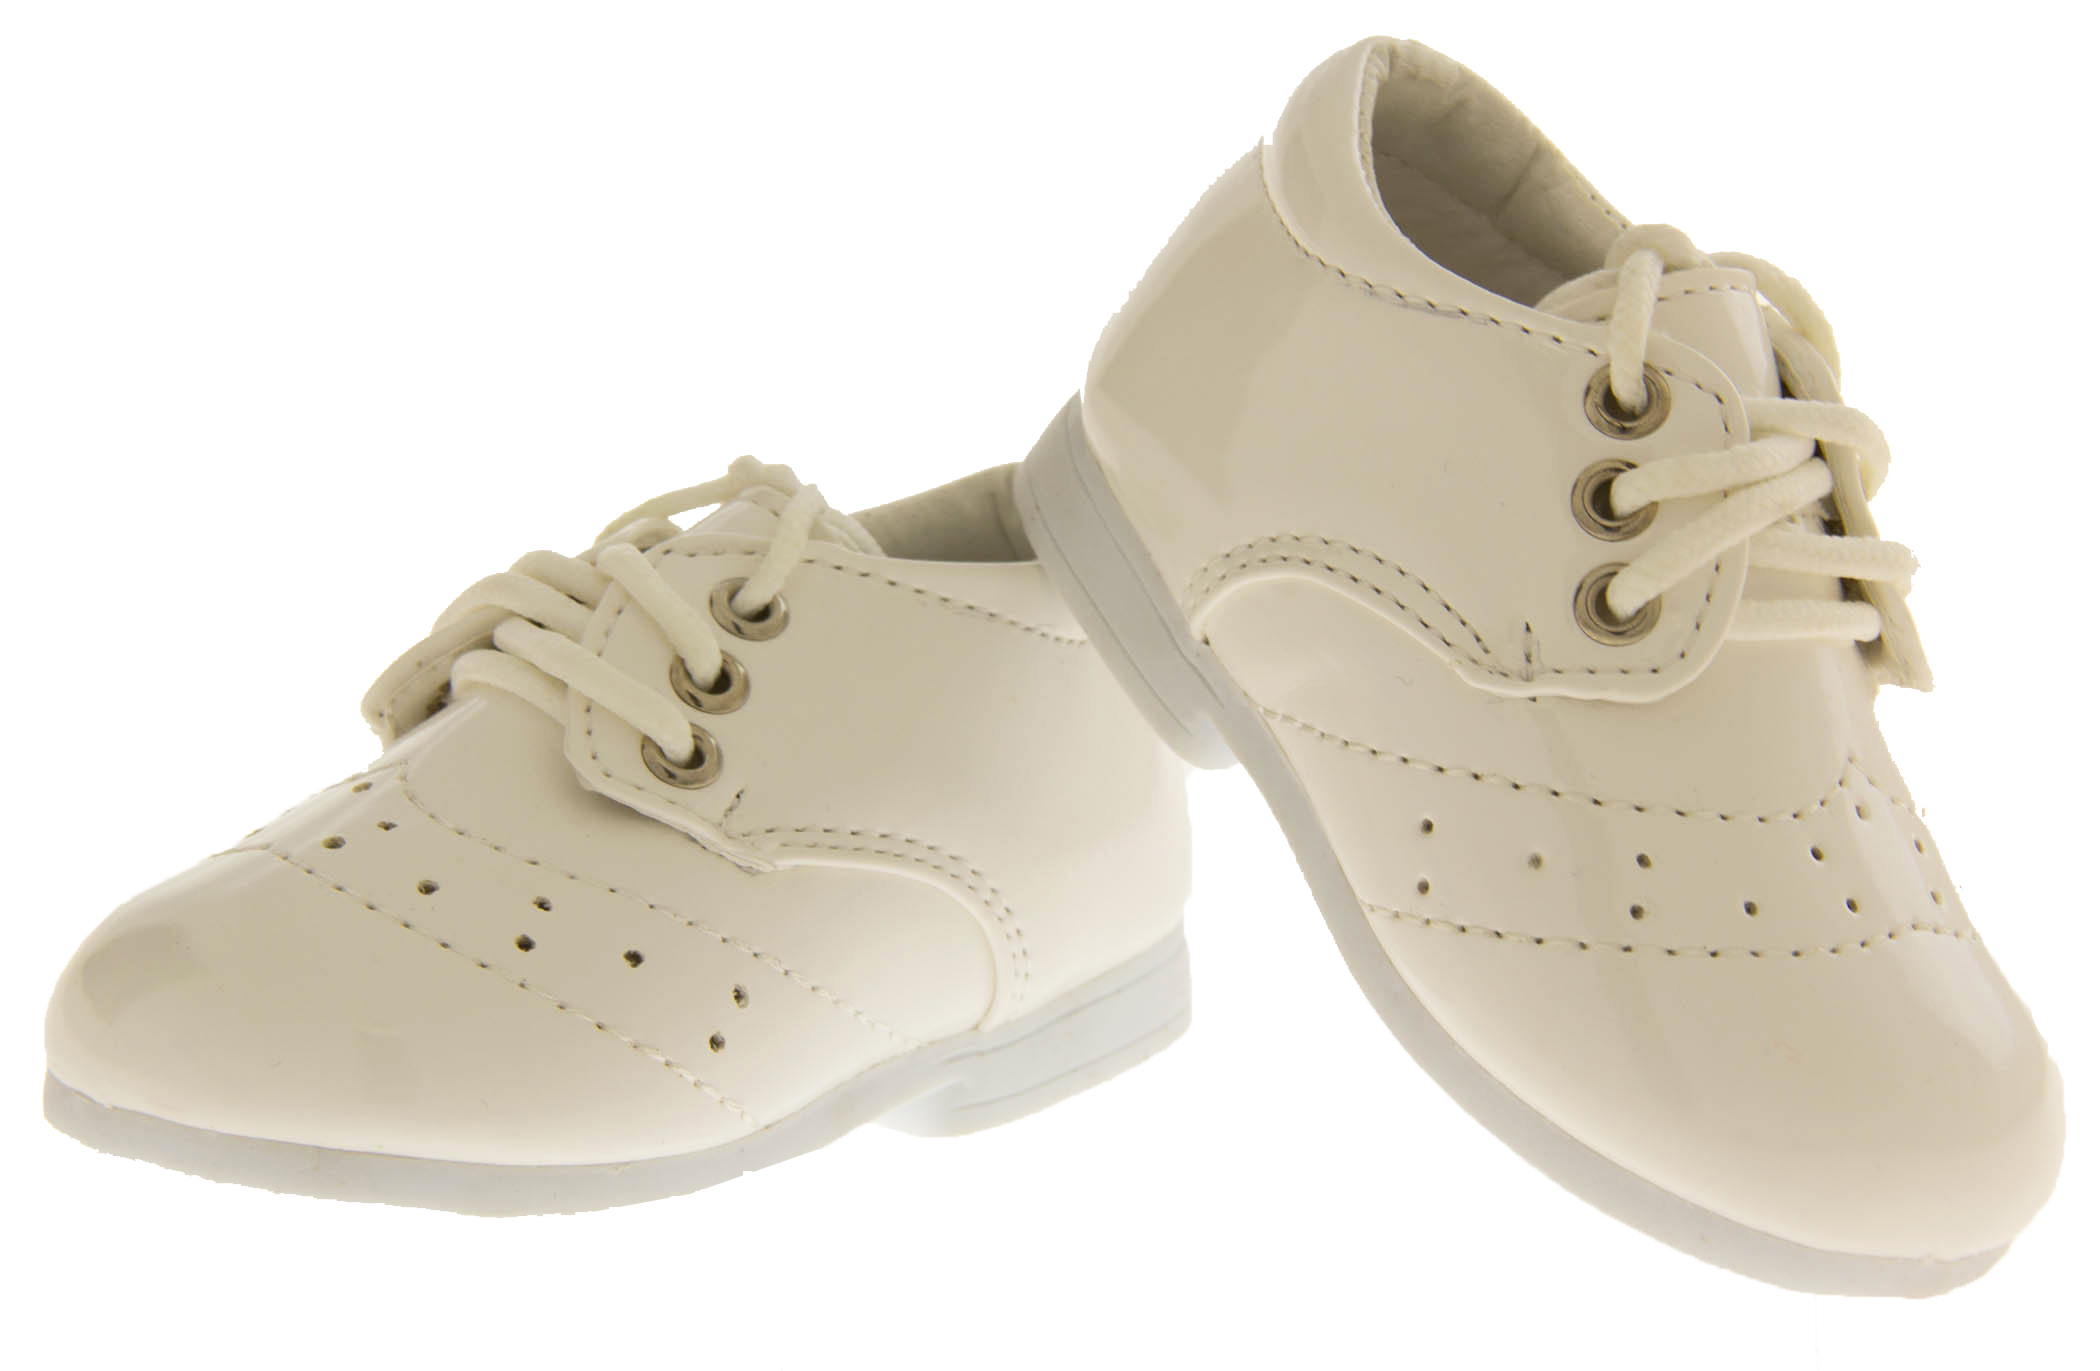 New Baby Toddler Boys White Laces Christening Pumps Wedding Shoes Size 0 1 2 3